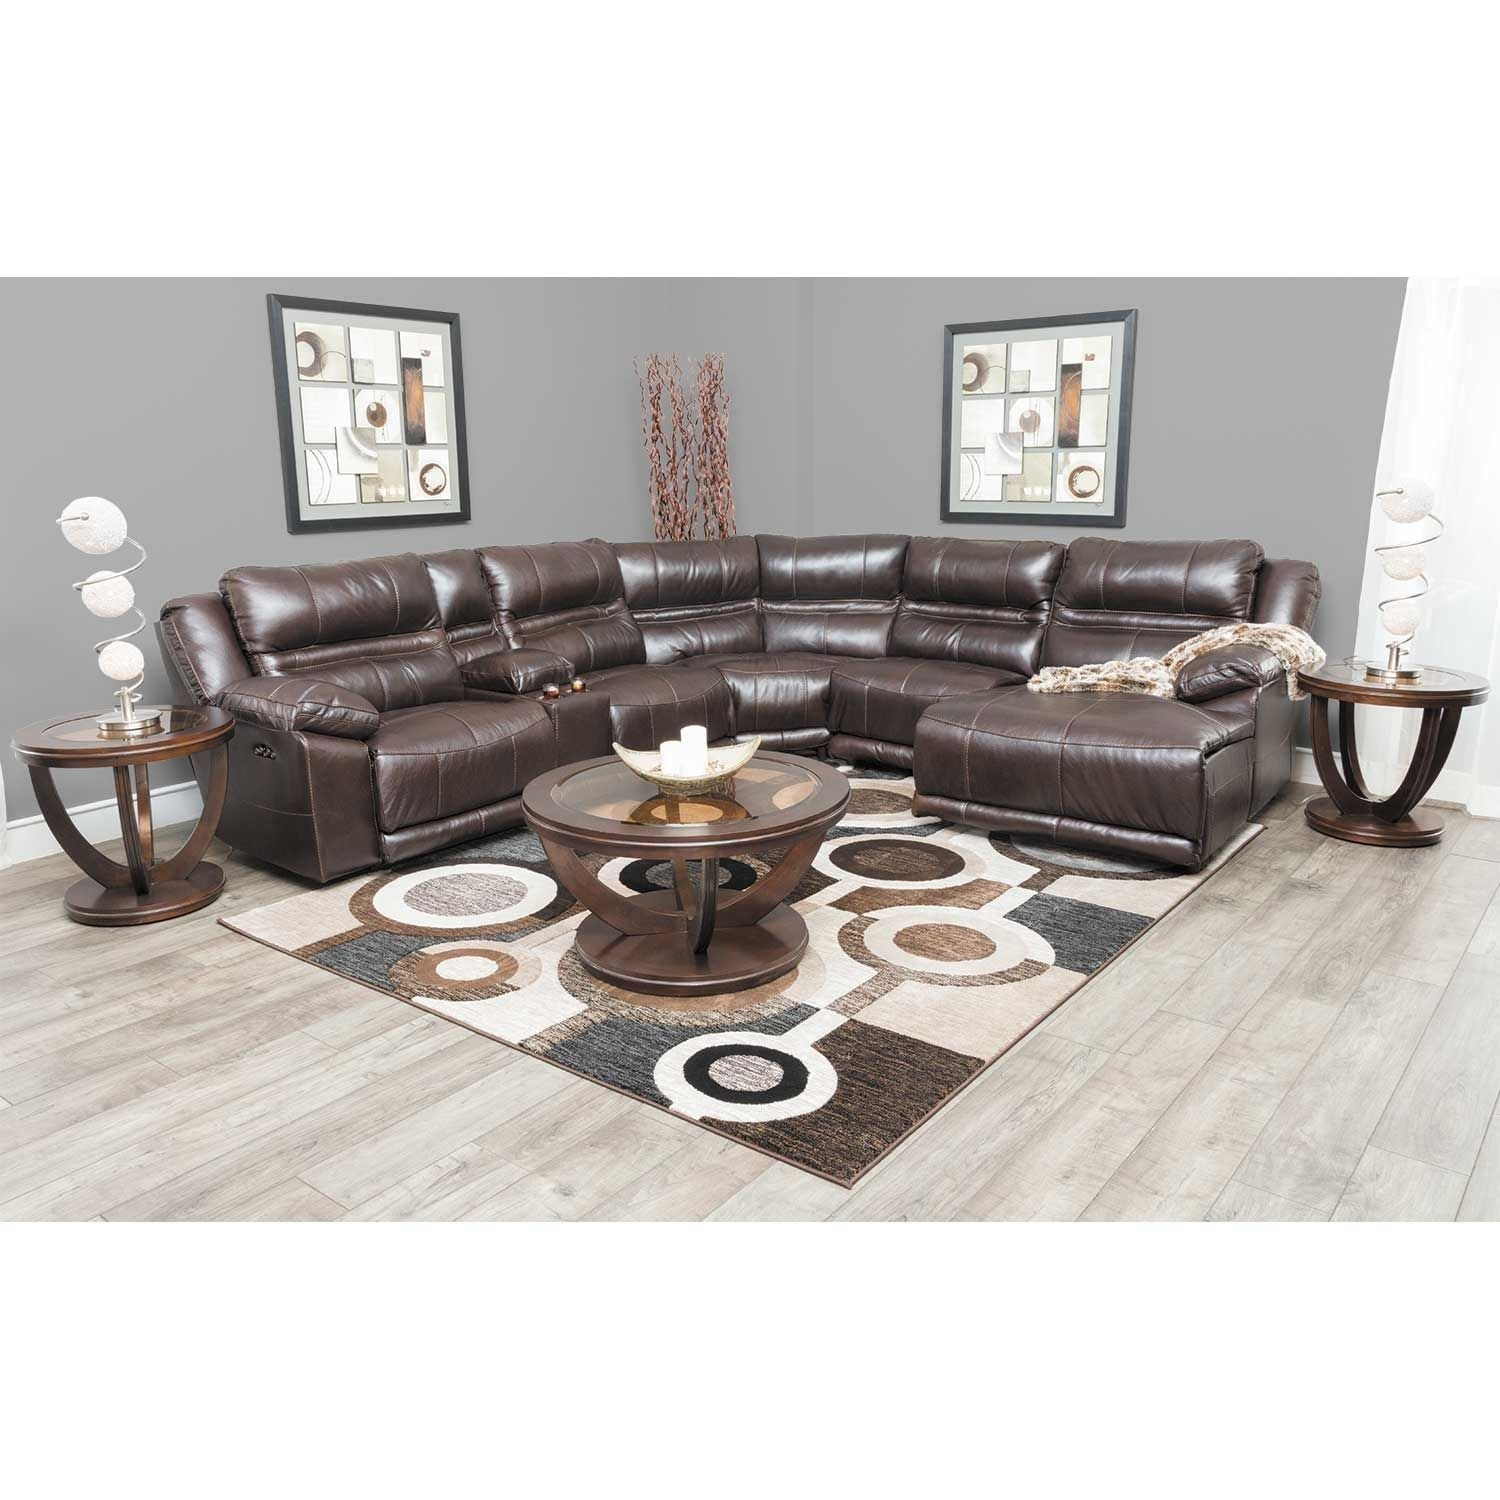 Bergamo 6 Piece Power Reclining Sectional With Adjustable Headrest For Jackson 6 Piece Power Reclining Sectionals With  Sleeper (Image 4 of 25)